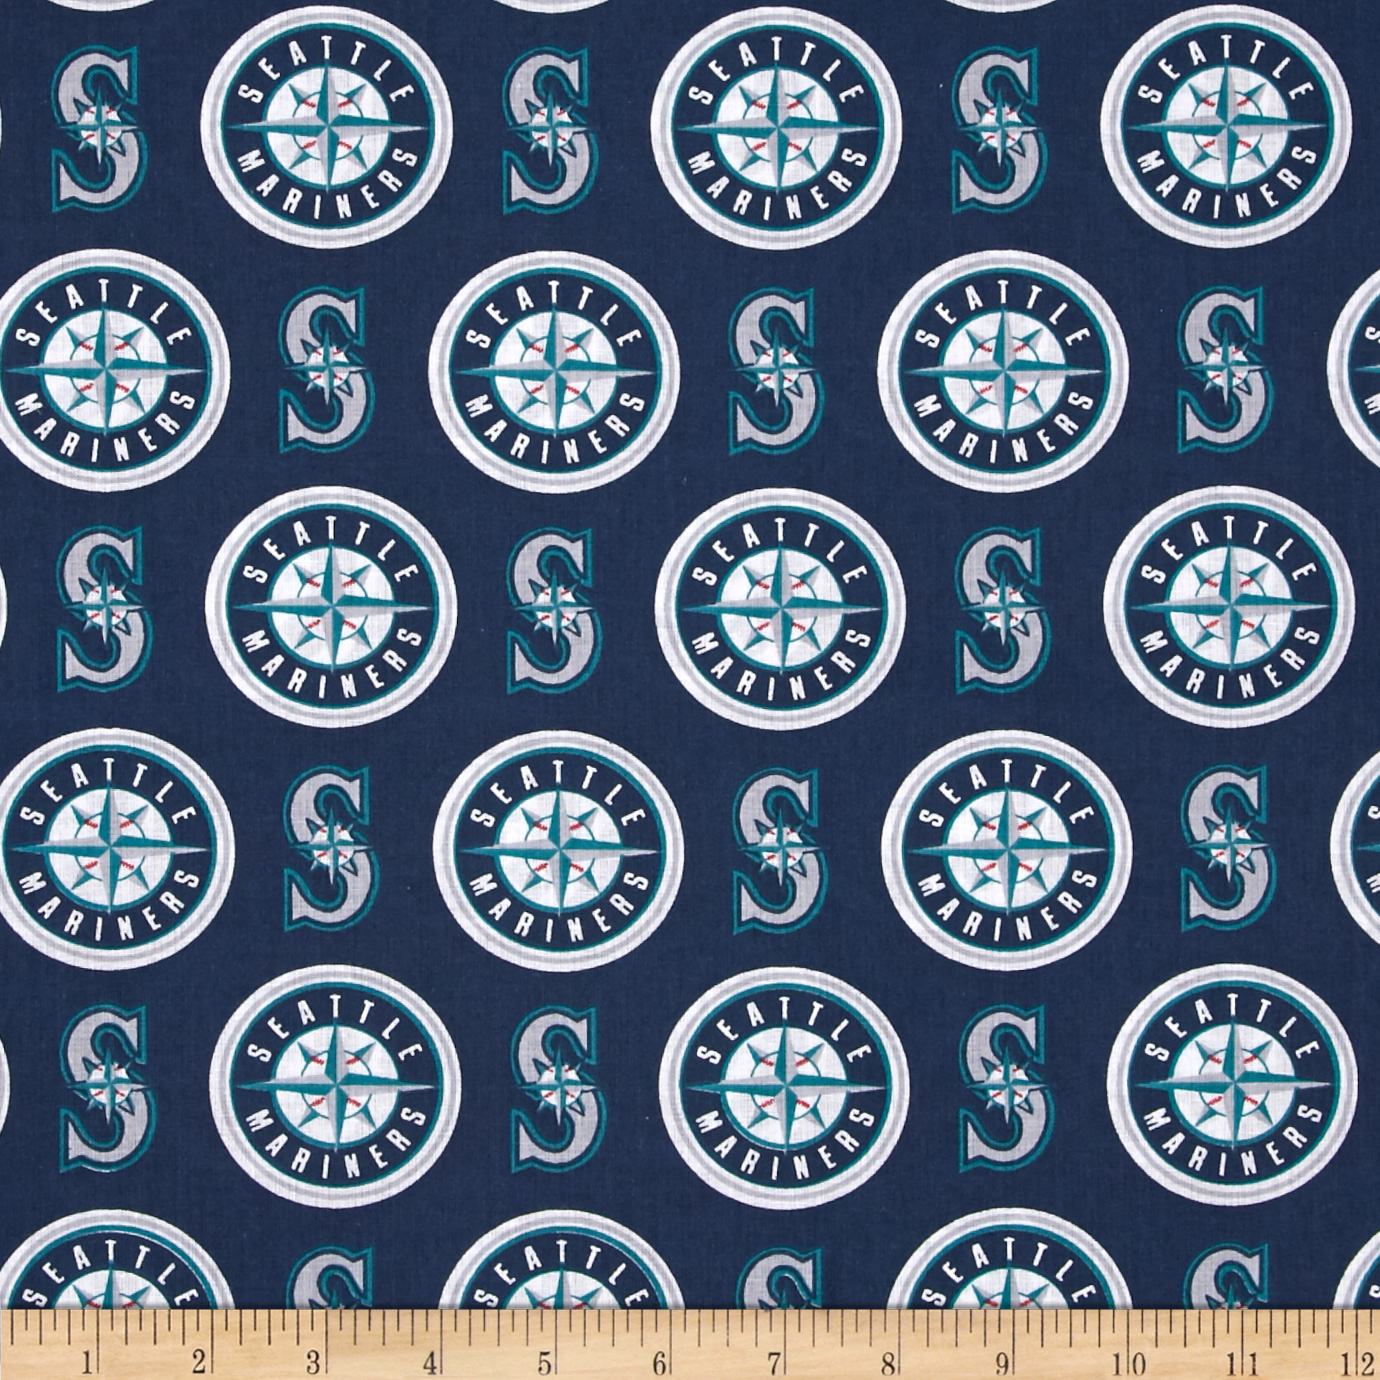 MLB Cotton Broadcloth Seattle Mariners Blue/White Fabric by Fabric Traditions in USA